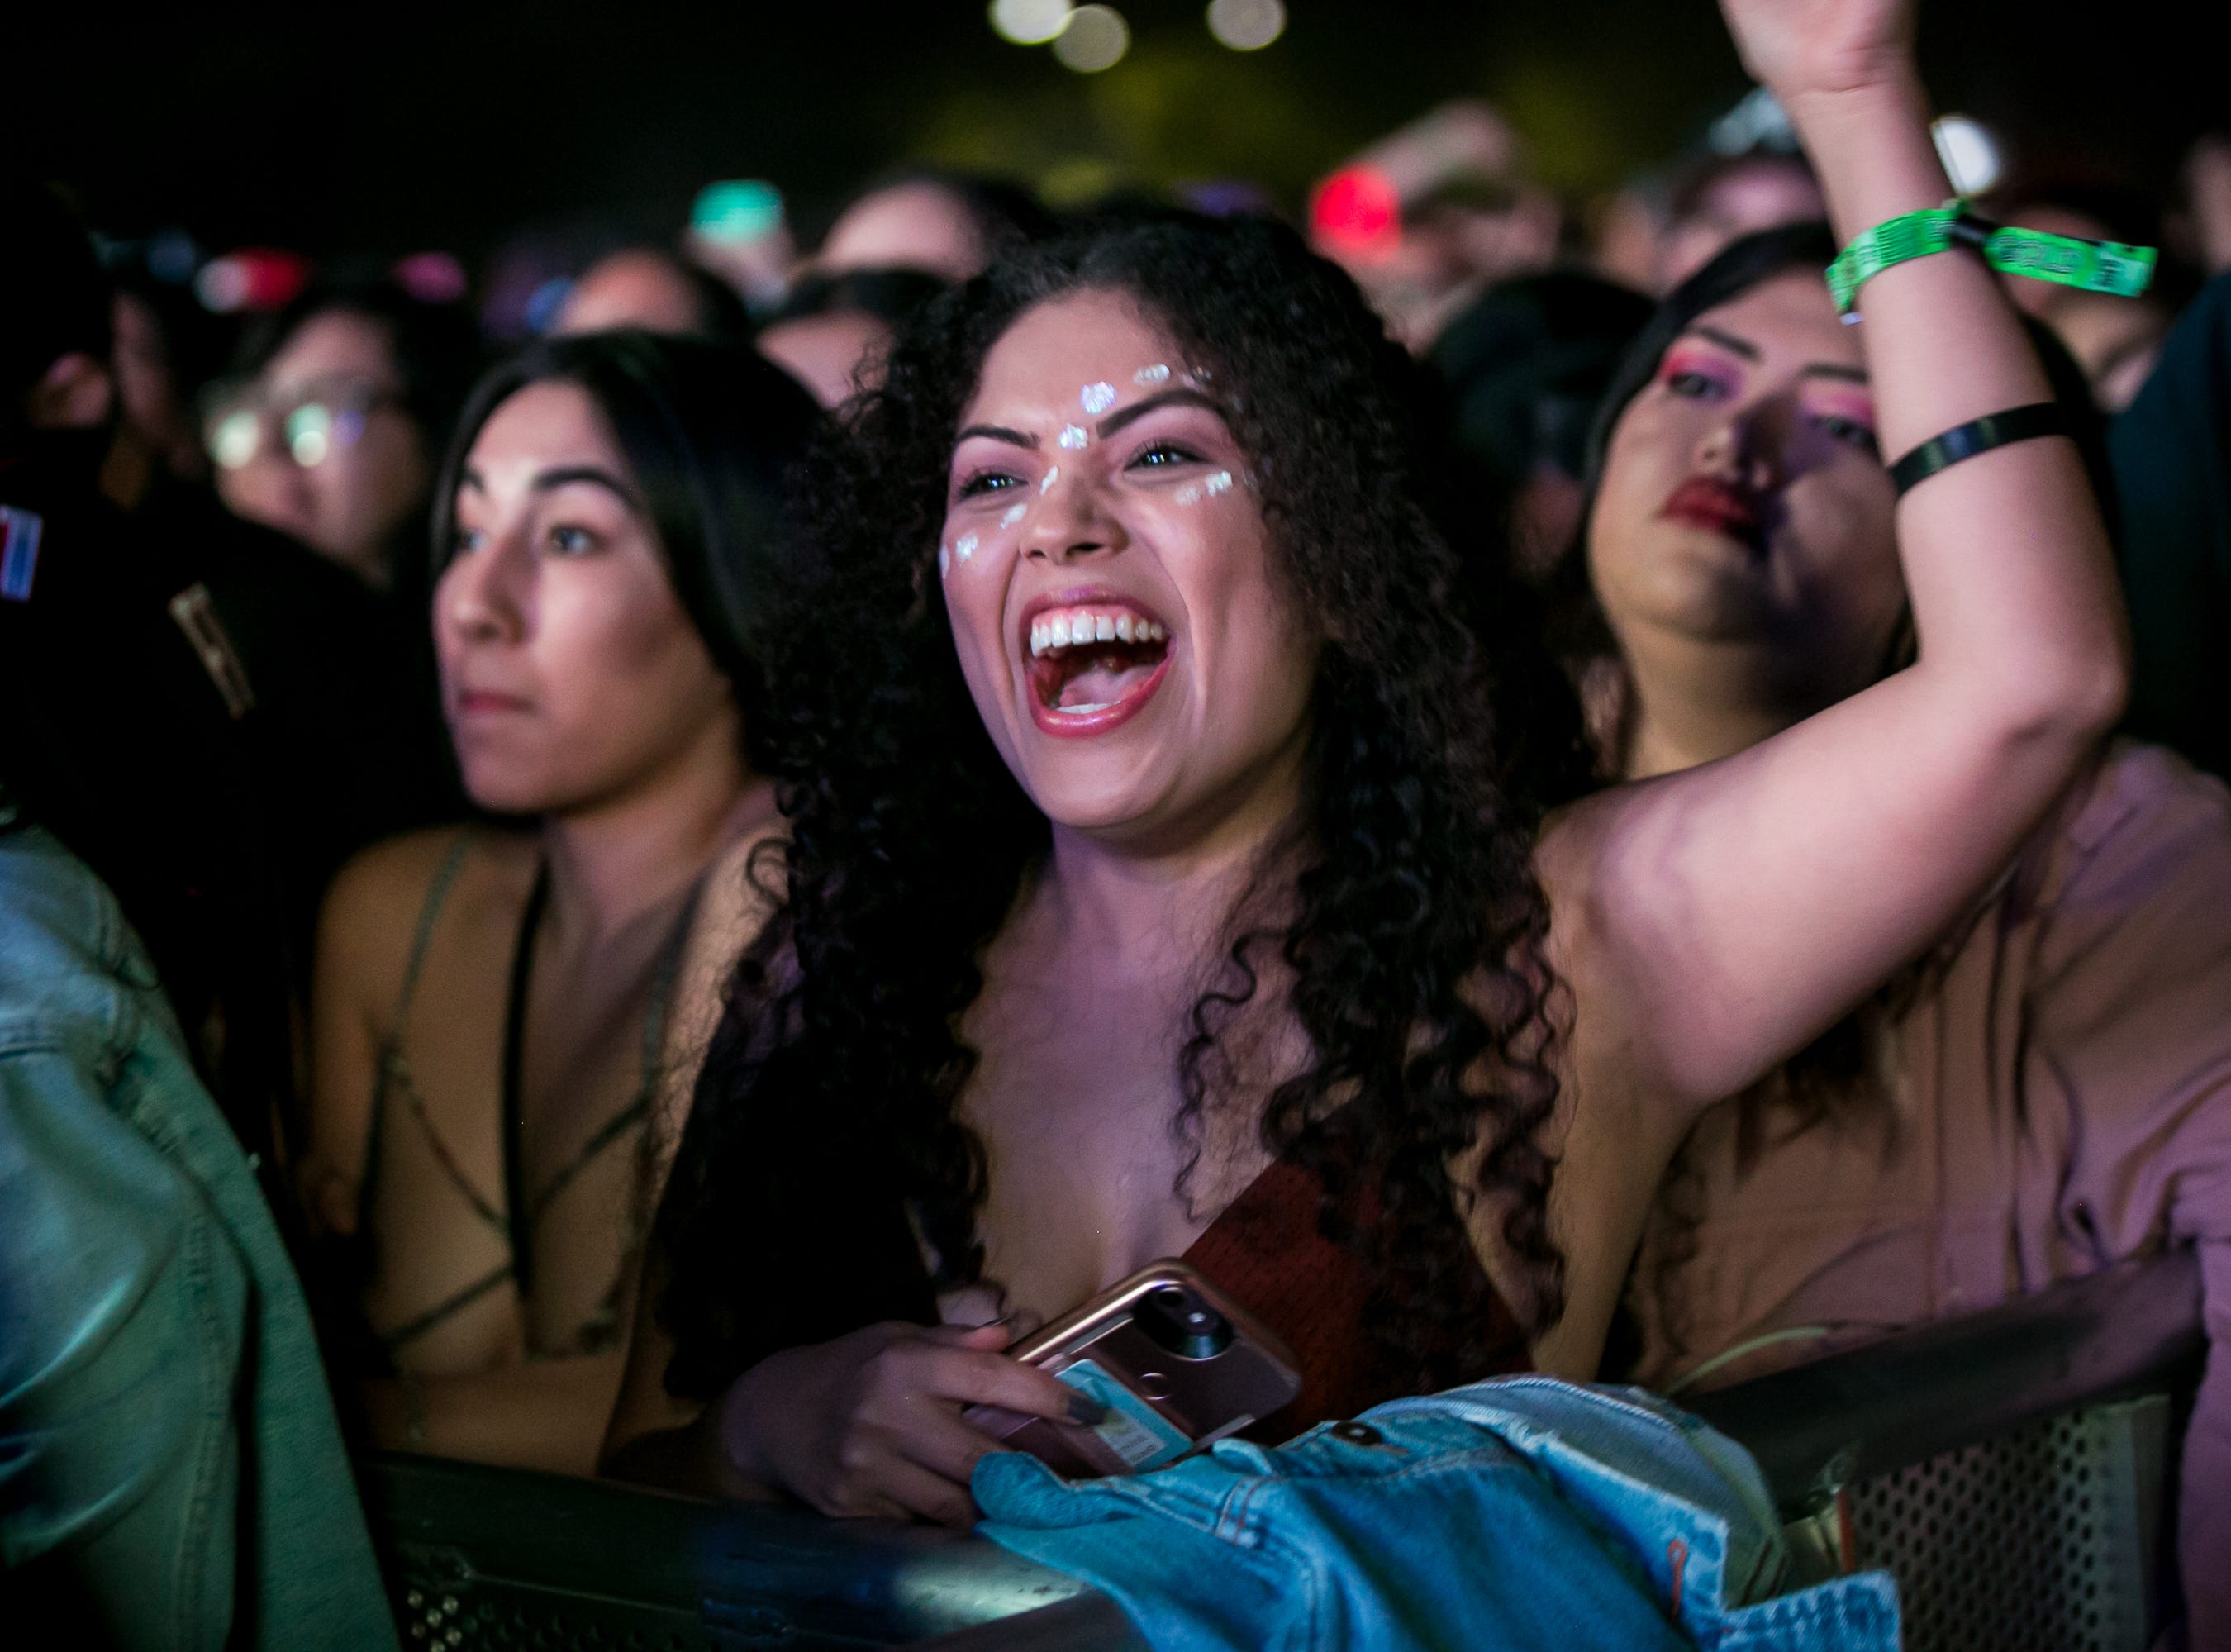 Fans cheered at OZUNA's performance at Pot of Gold Music Festival at Steele Indian School Park on Friday, March 15, 2019.